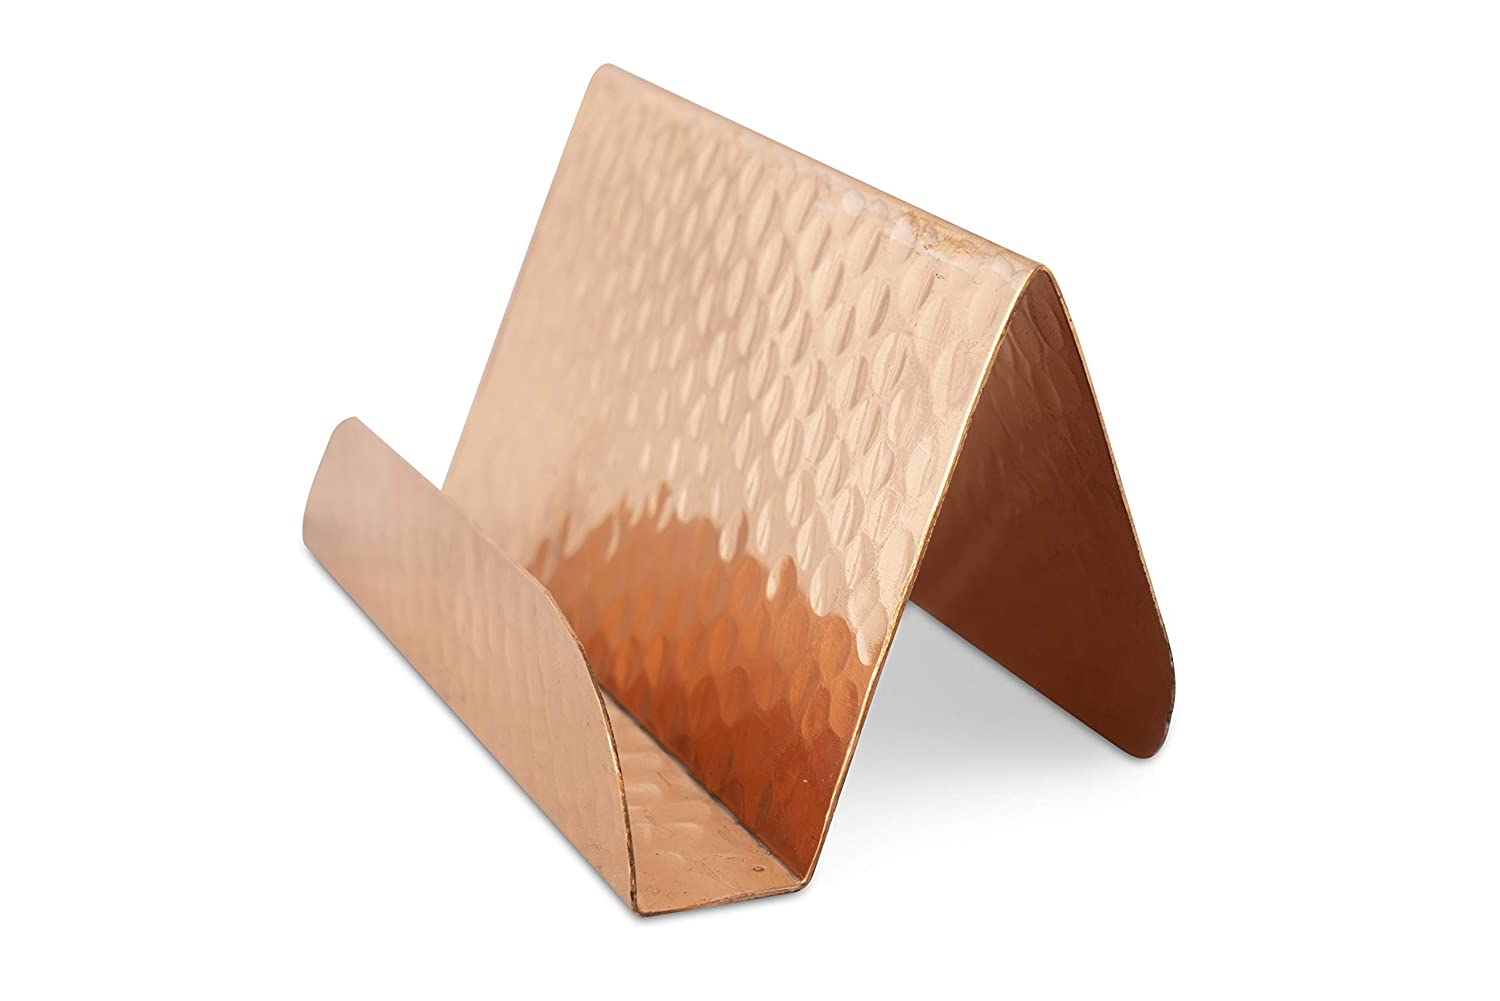 GoCraft Pure Copper Business Card Holder Stand | Fits 20-30 Business Cards | Antique Finish Copper Stand